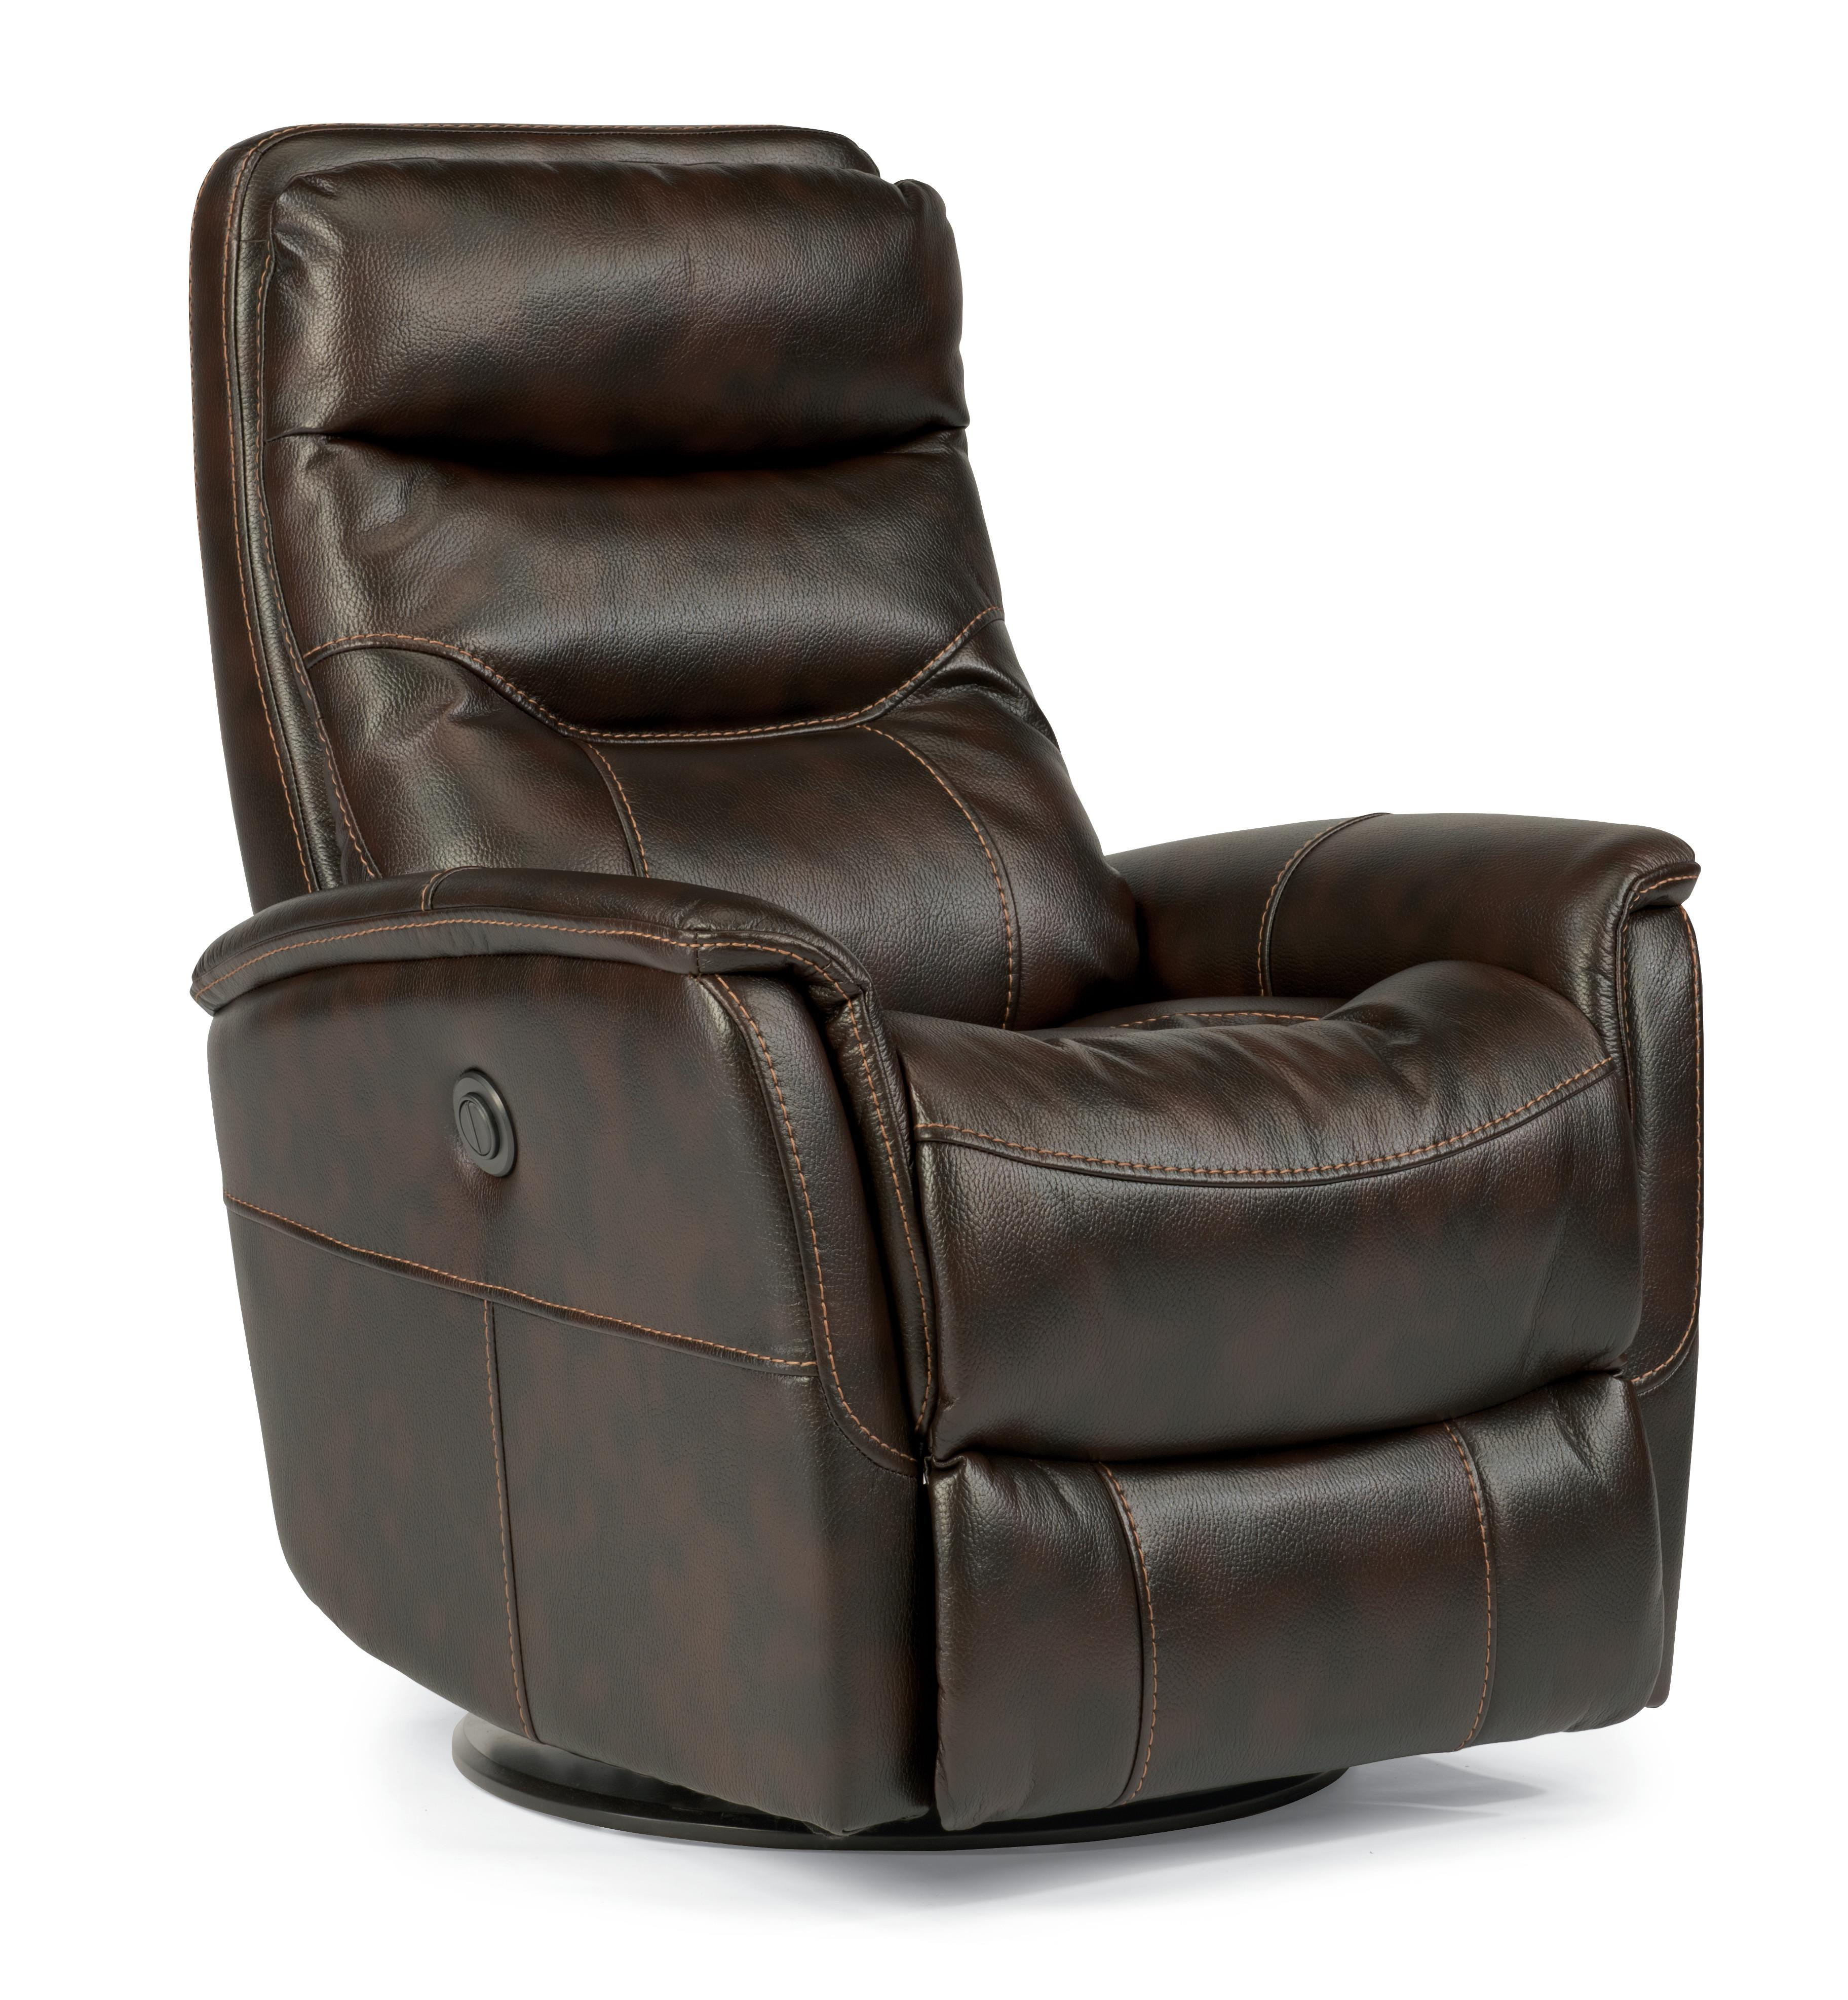 Flexsteel Latitudes Go Anywhere Recliners Alden Queen Power Swivel Glider Recline - Item Number: 1392-53PQ-580-70